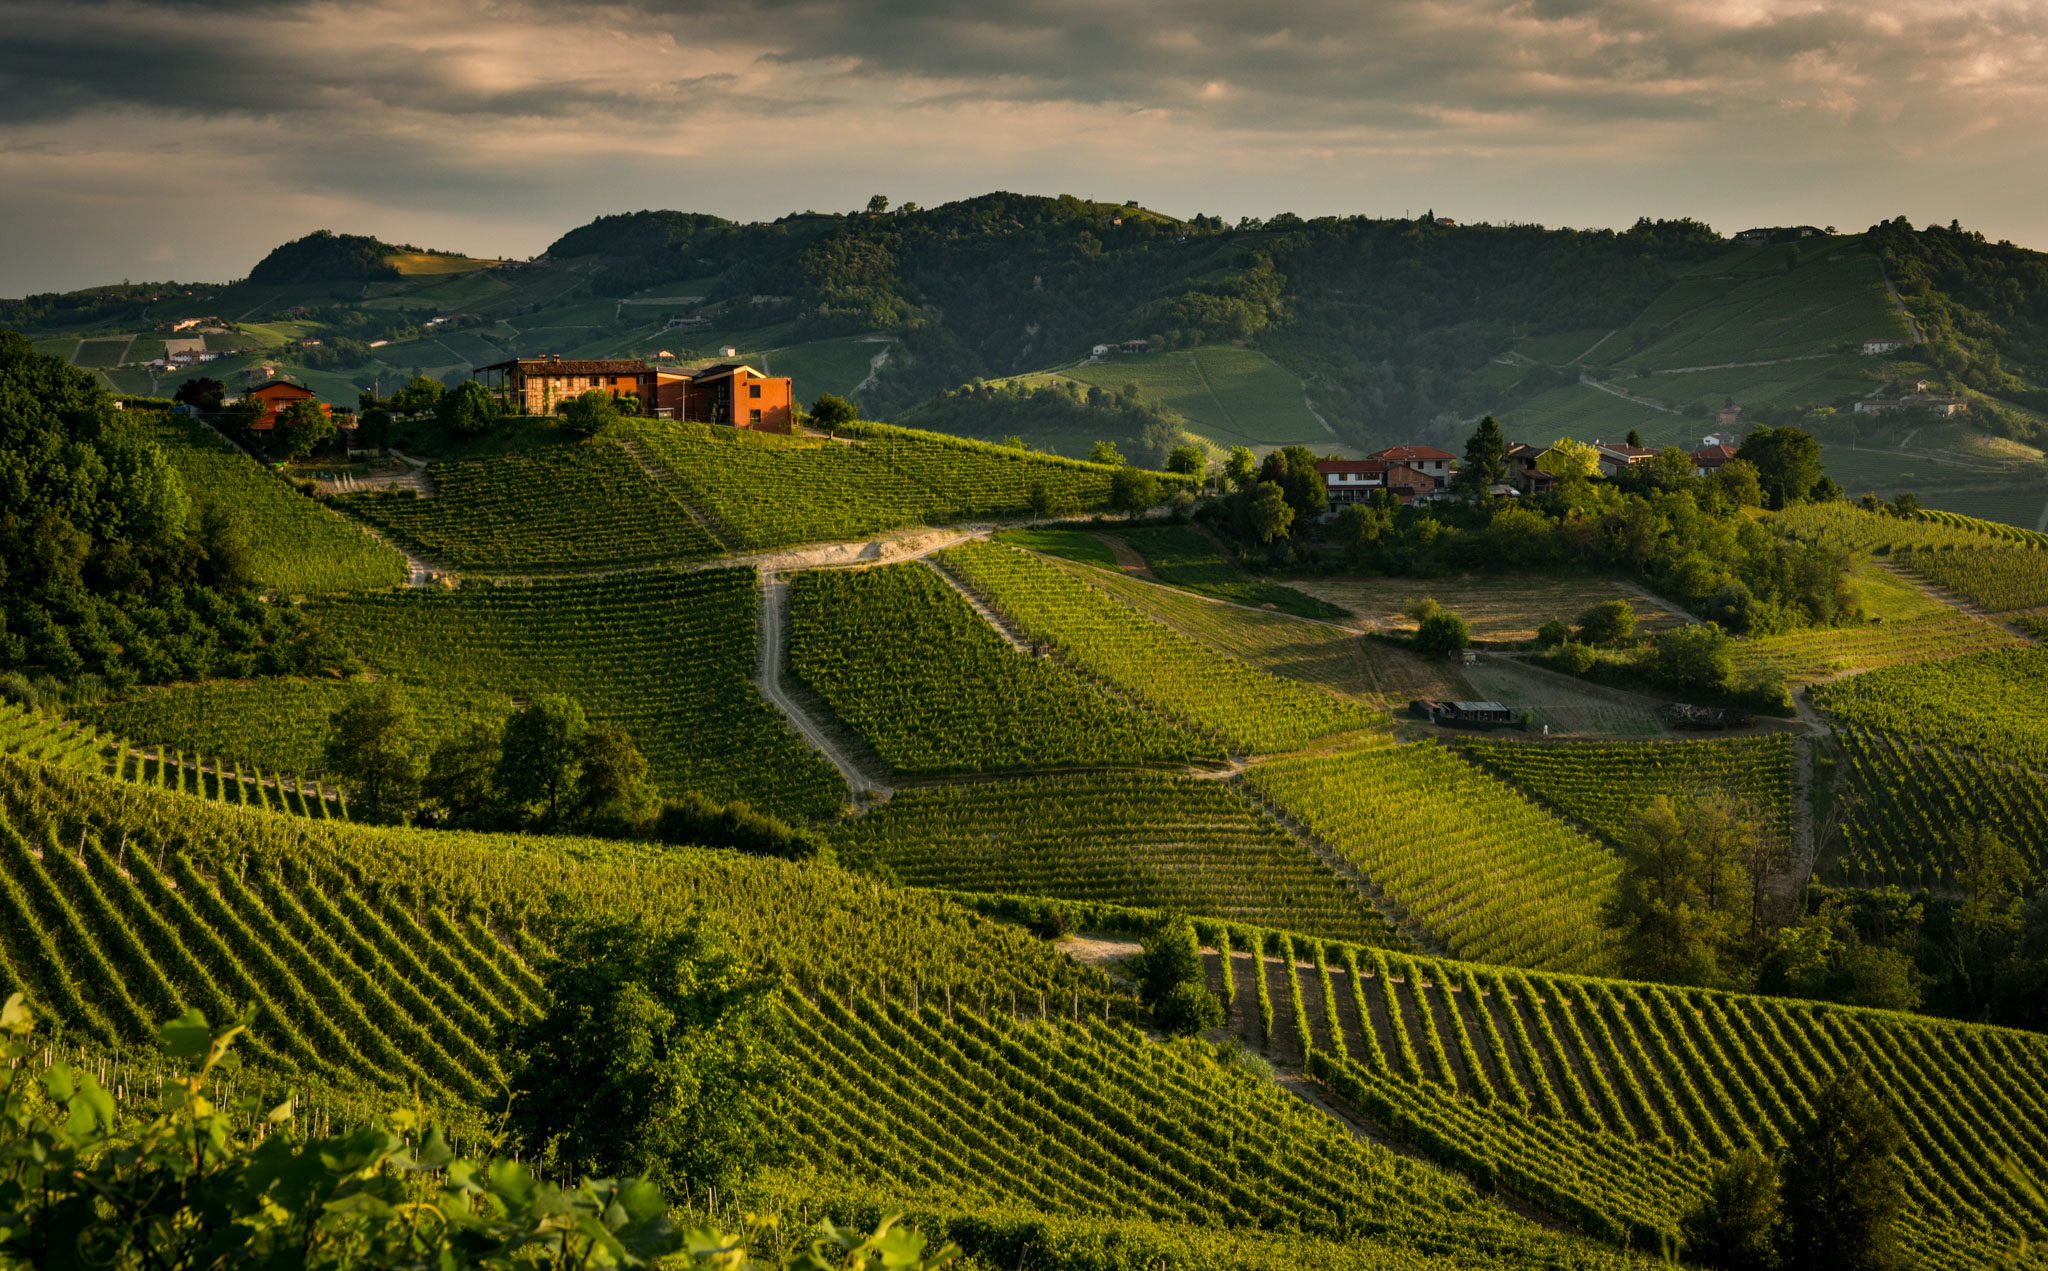 Italy : Piedmont : Portions of Lazzarito and other vineyards in Serralunga d'Alba